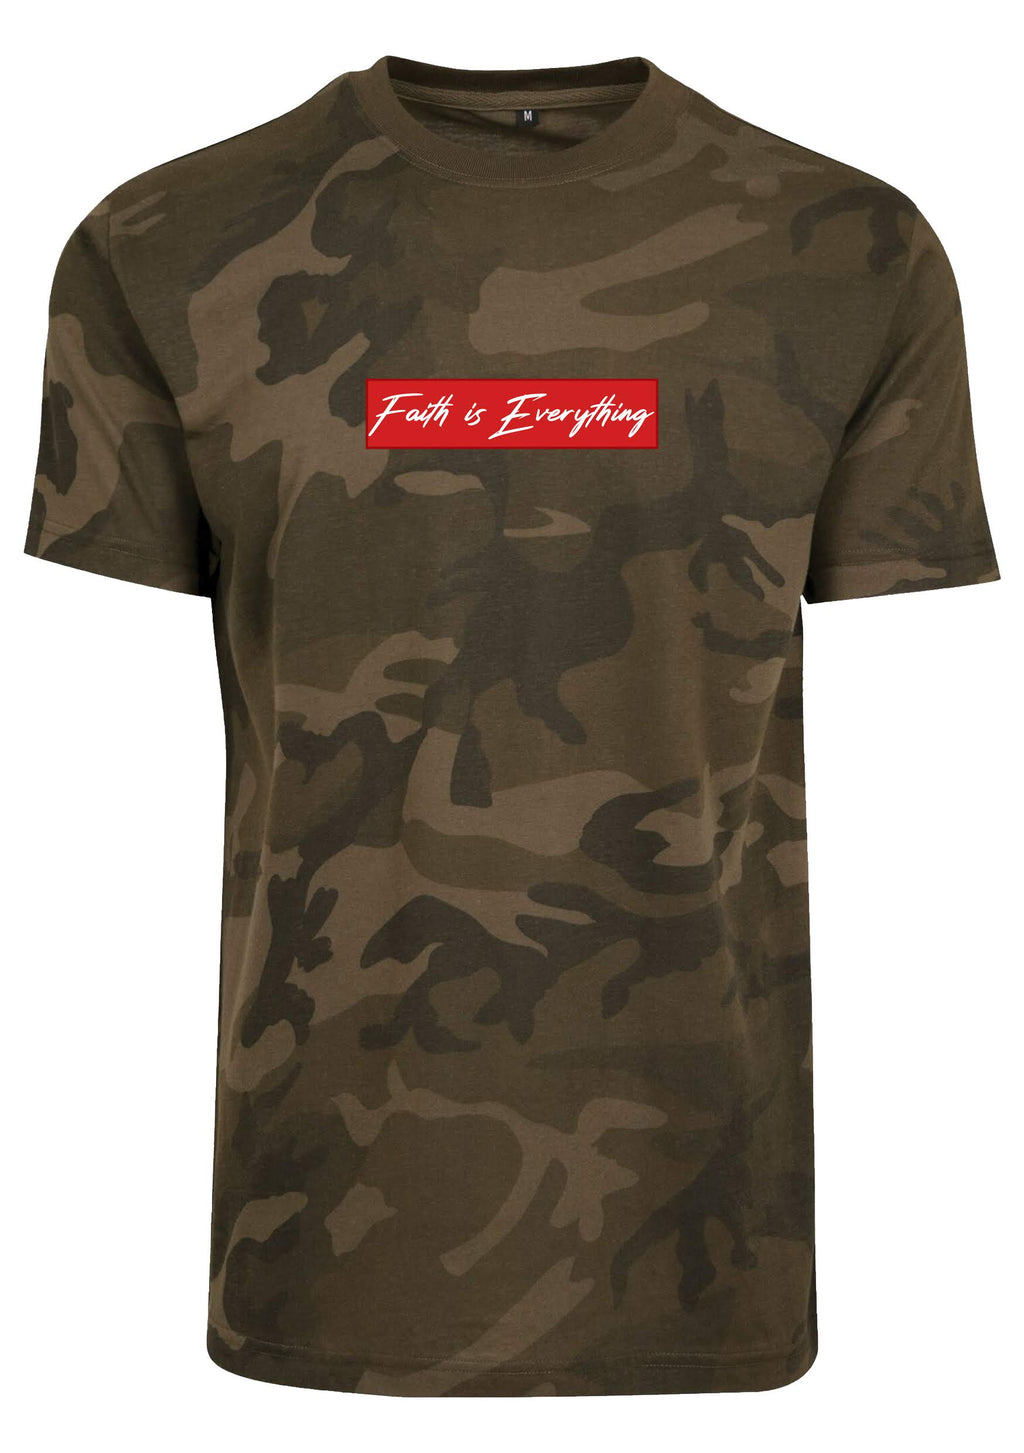 UNISEX FAITH IS EVERYTHING CAMO ROUND NECK T-SHIRT